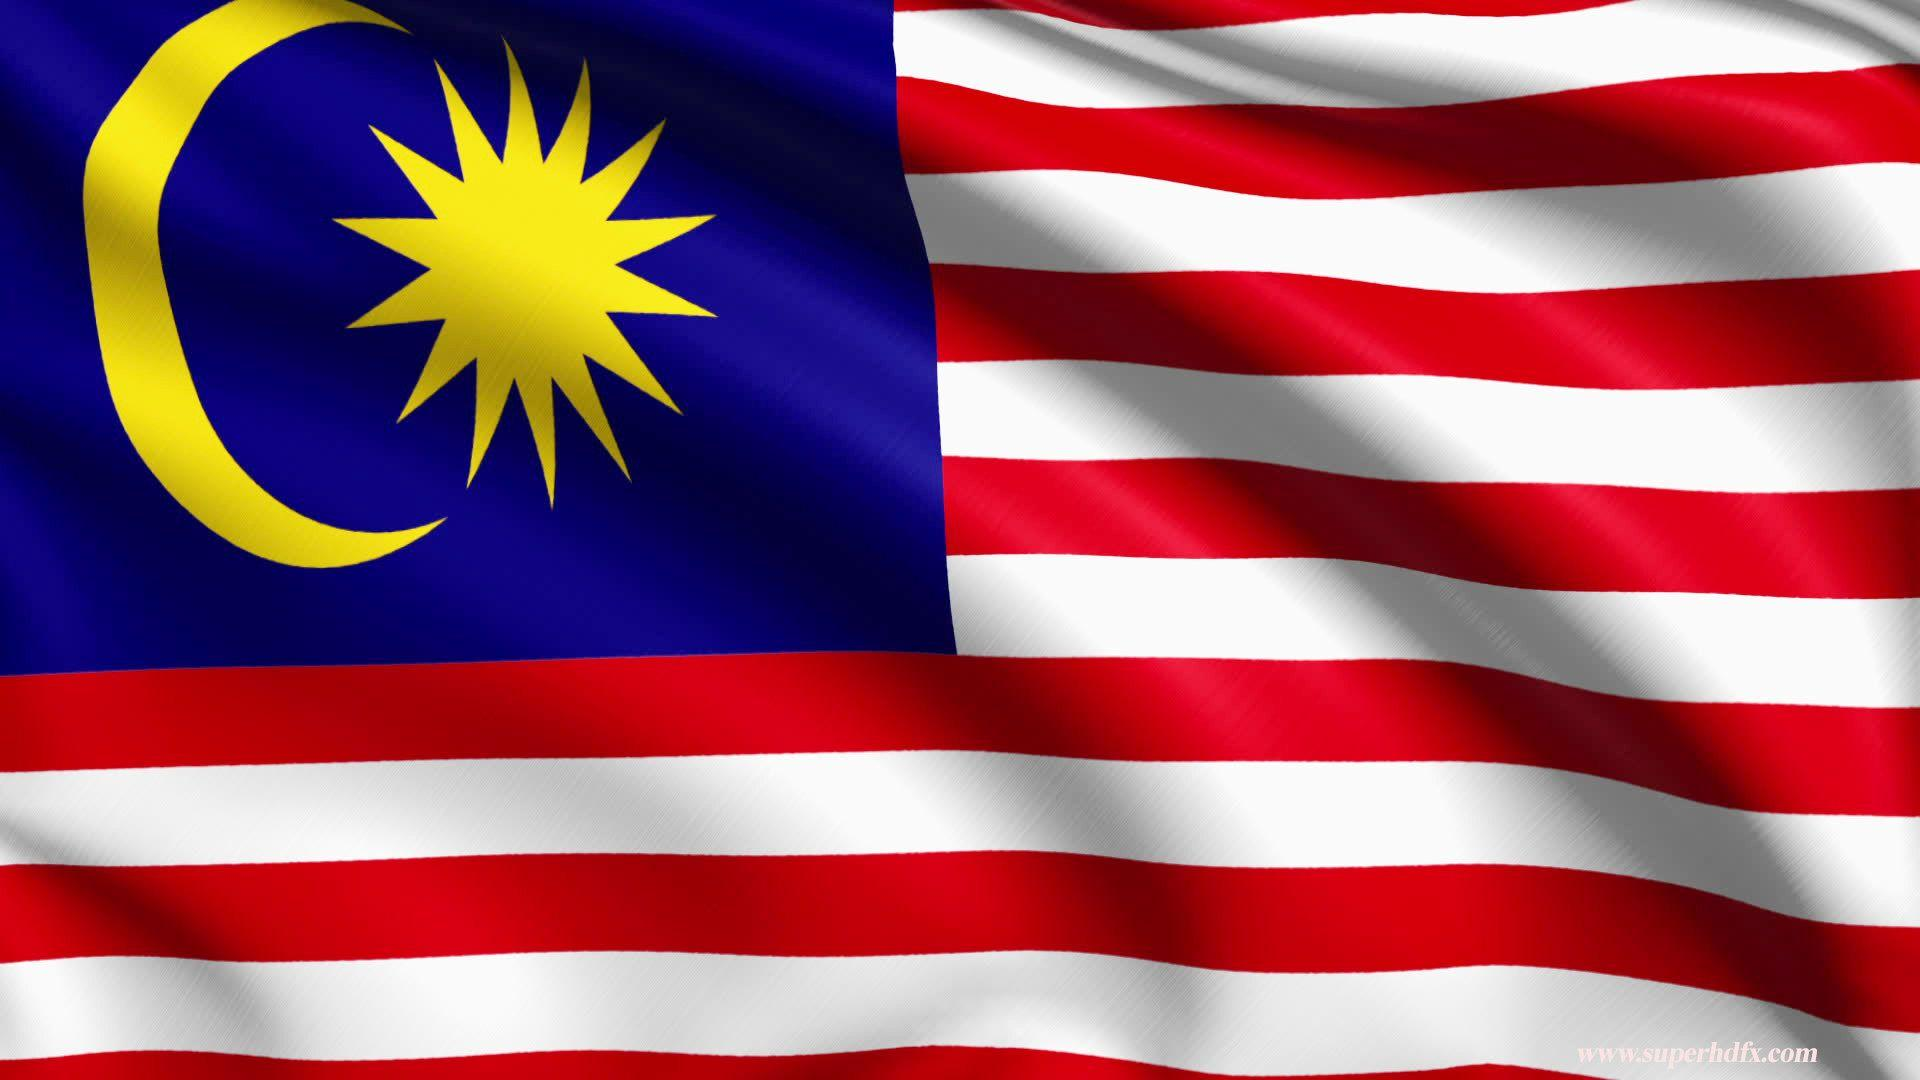 Anime 2014 Wallpaper Malaysia Flag Wallpapers Wallpaper Cave